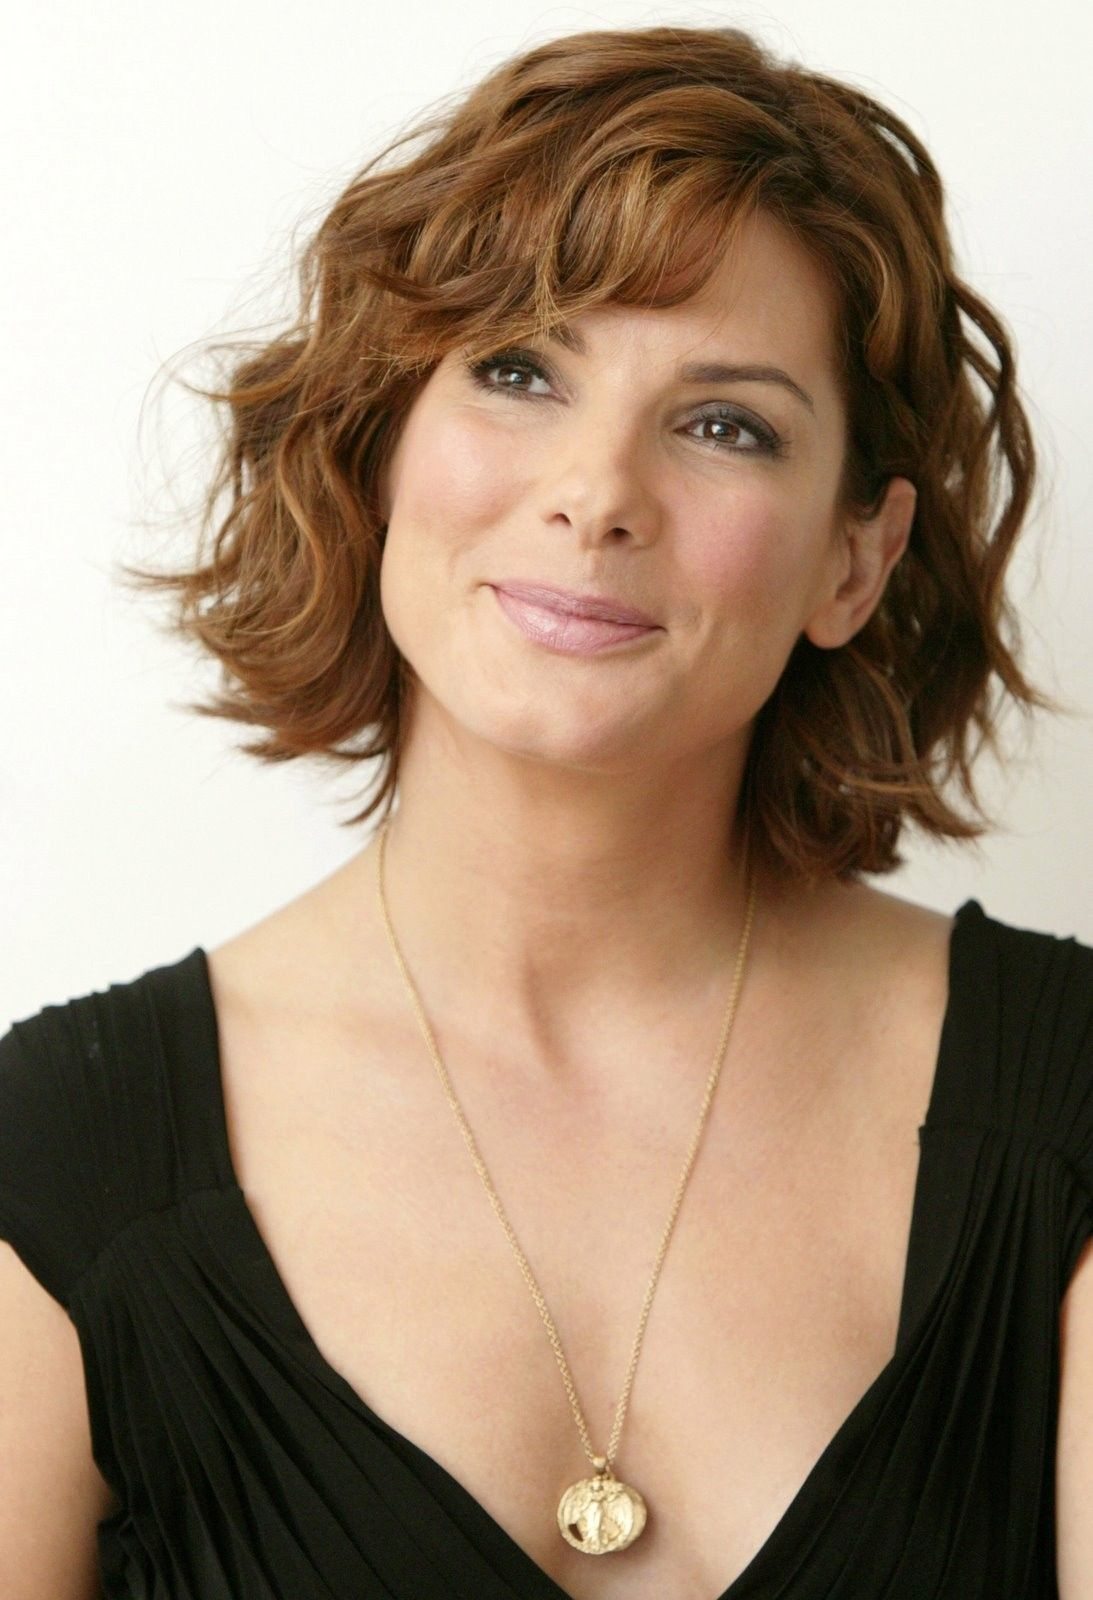 Inspiring Short Hairstyles for Older Women (Updated 2021) 82cbef245c27b00c12429eaf22e7cecf